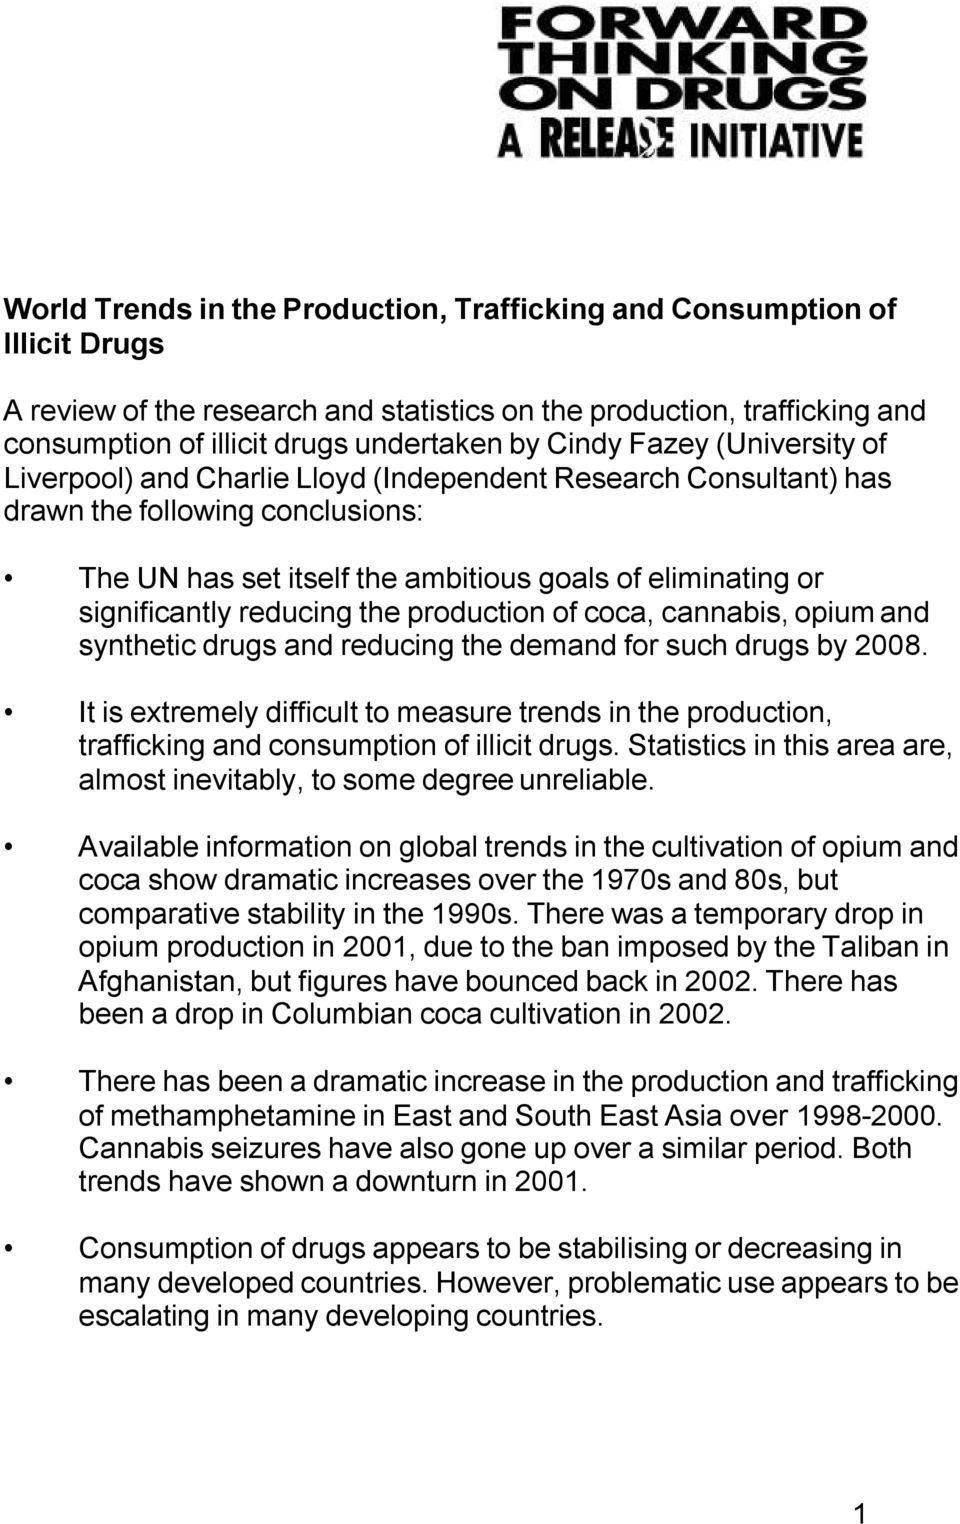 significantly reducing the production of coca, cannabis, opium and synthetic drugs and reducing the demand for such drugs by 2008.